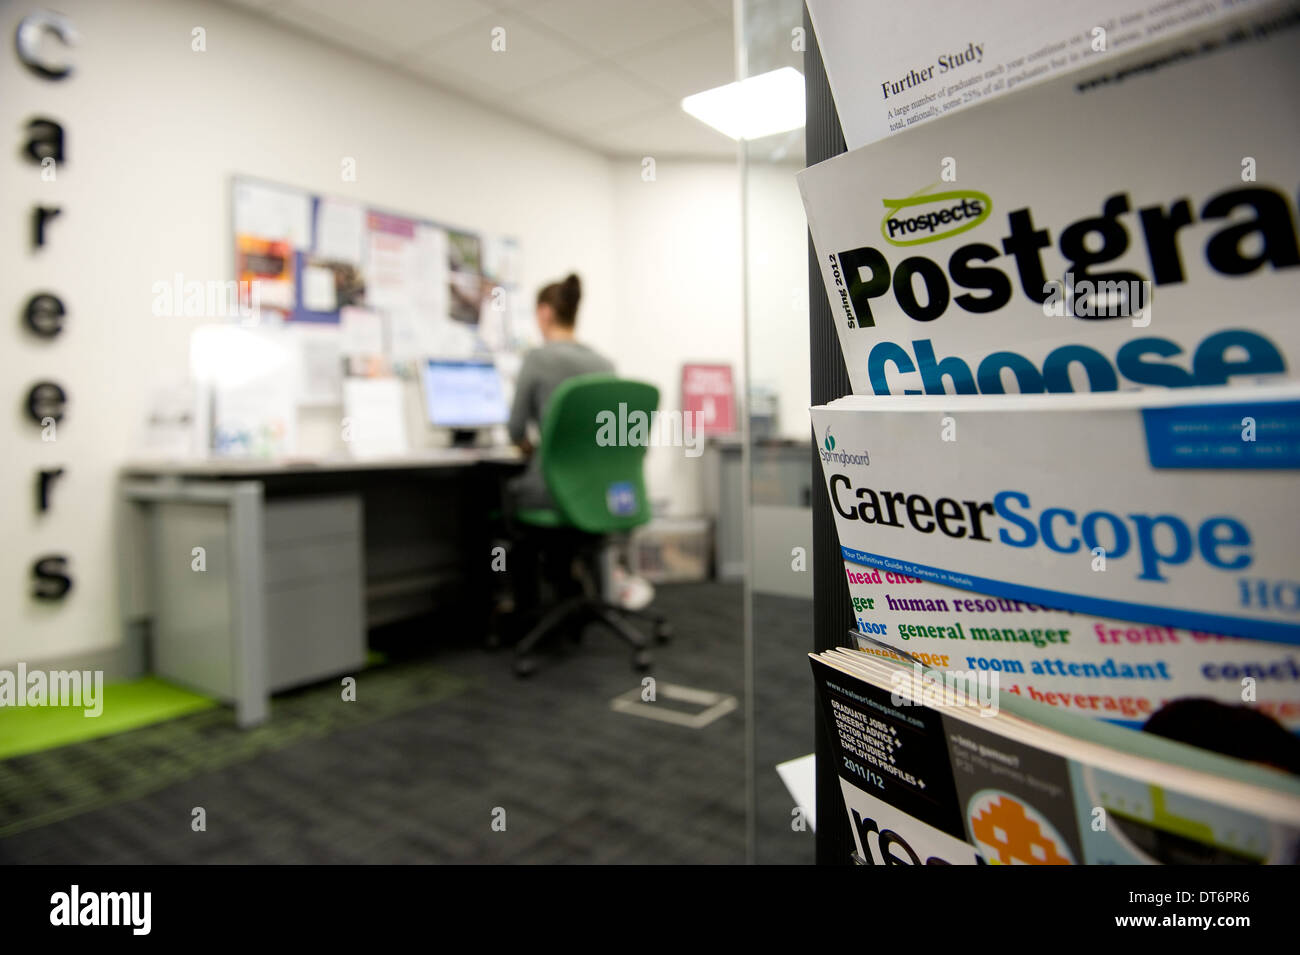 A college careers office. - Stock Image